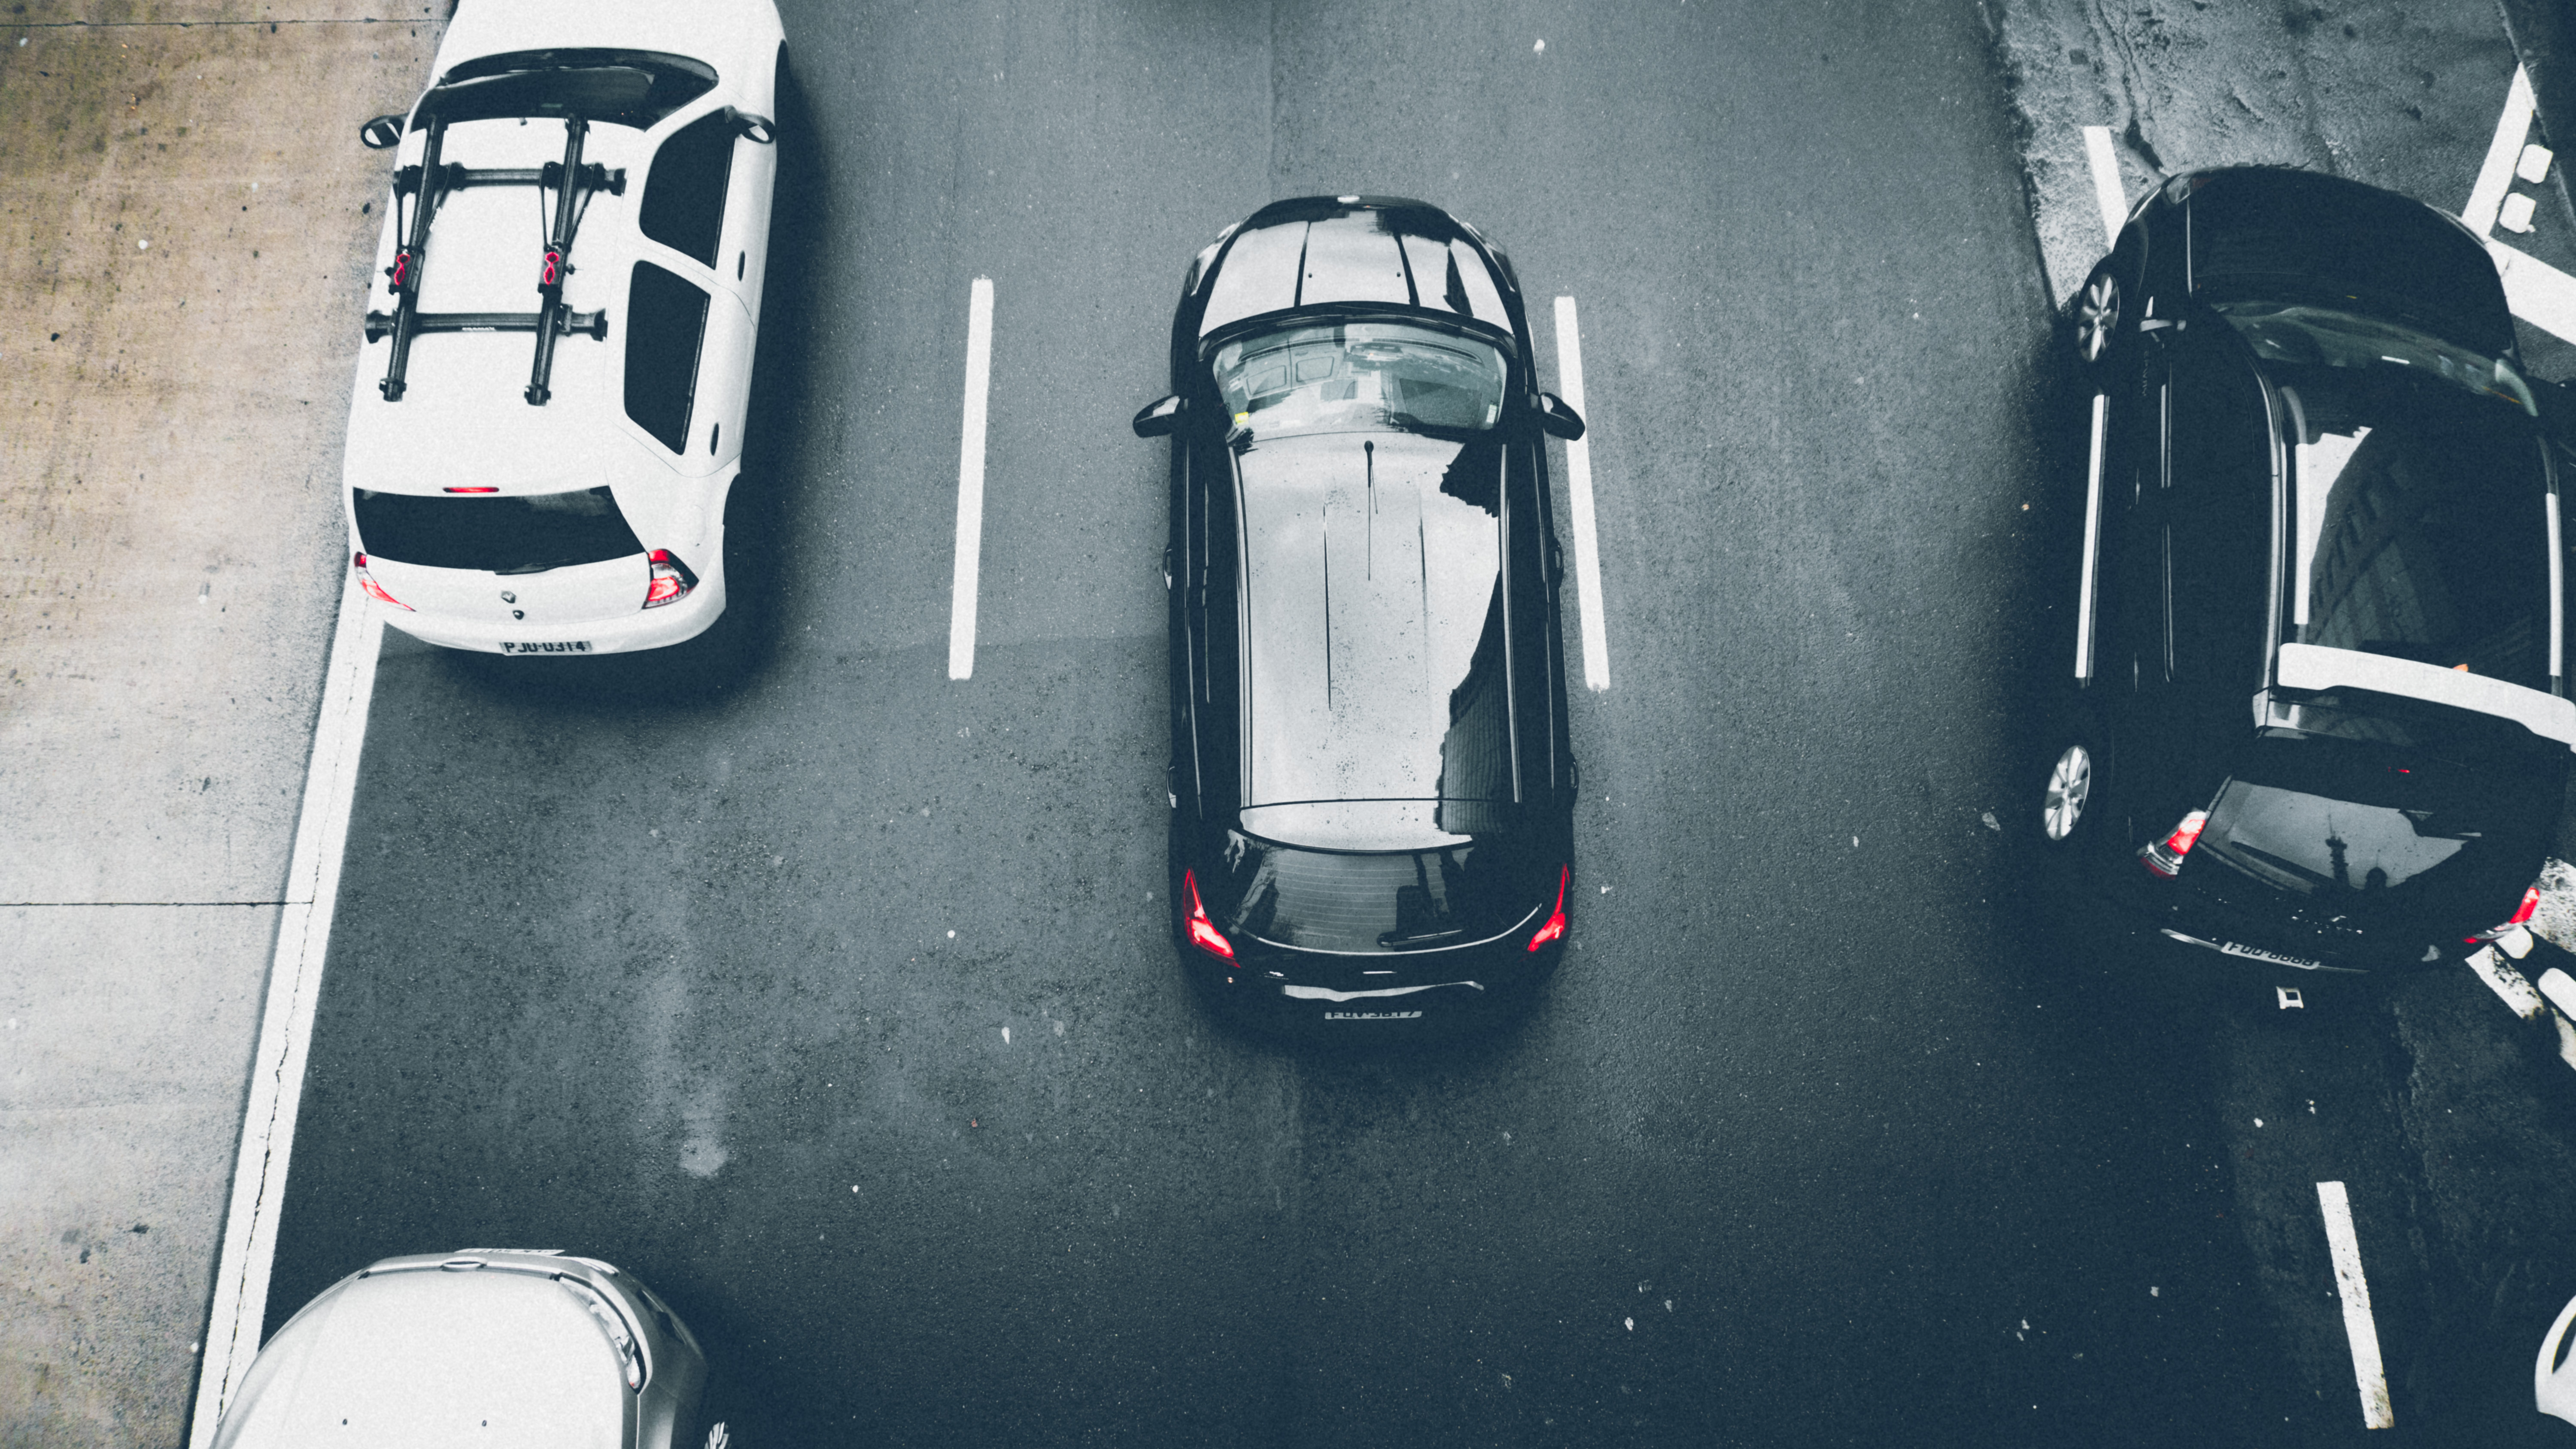 Black and White Vehicles on Road Aerial Photography